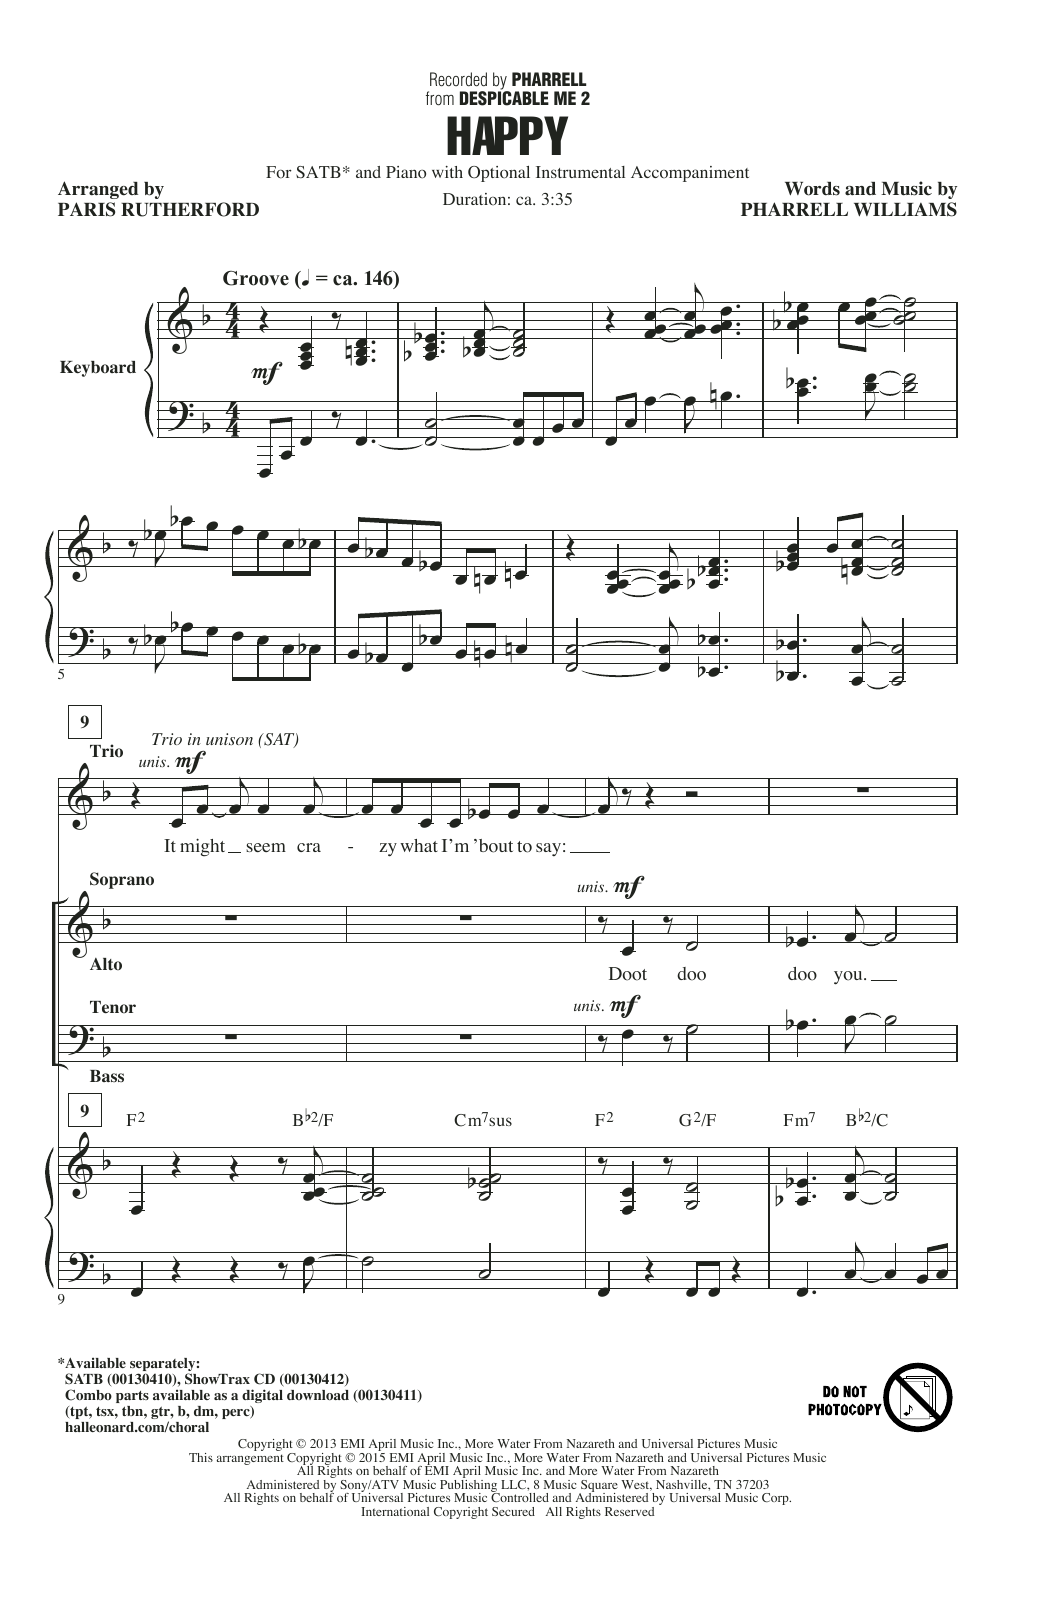 Partition chorale Happy (Arr. Paris Rutherford) de Pharrell - SATB